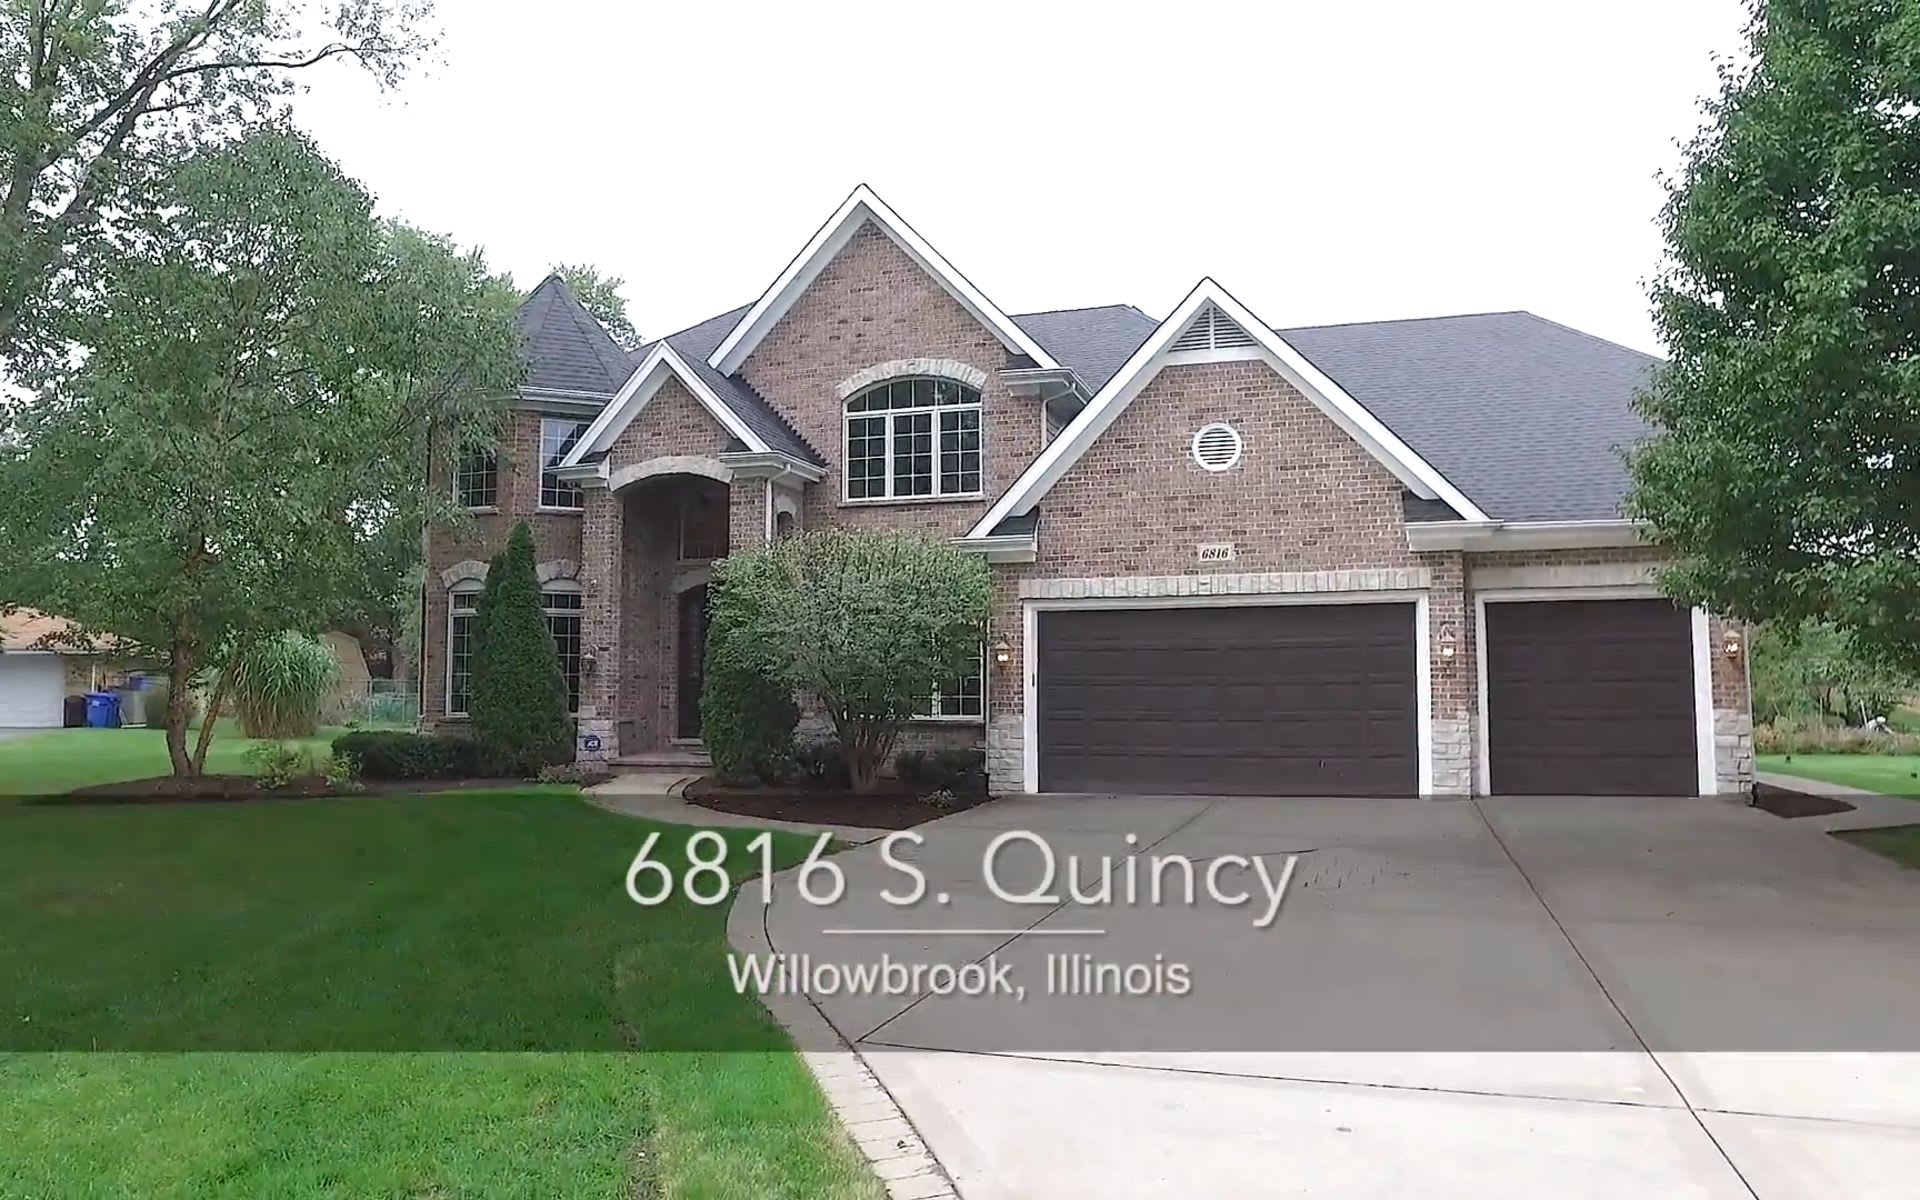 6816 SOUTH QUINCY, WILLOWBROOK, IL DAWN MCKENNA GROUP video preview